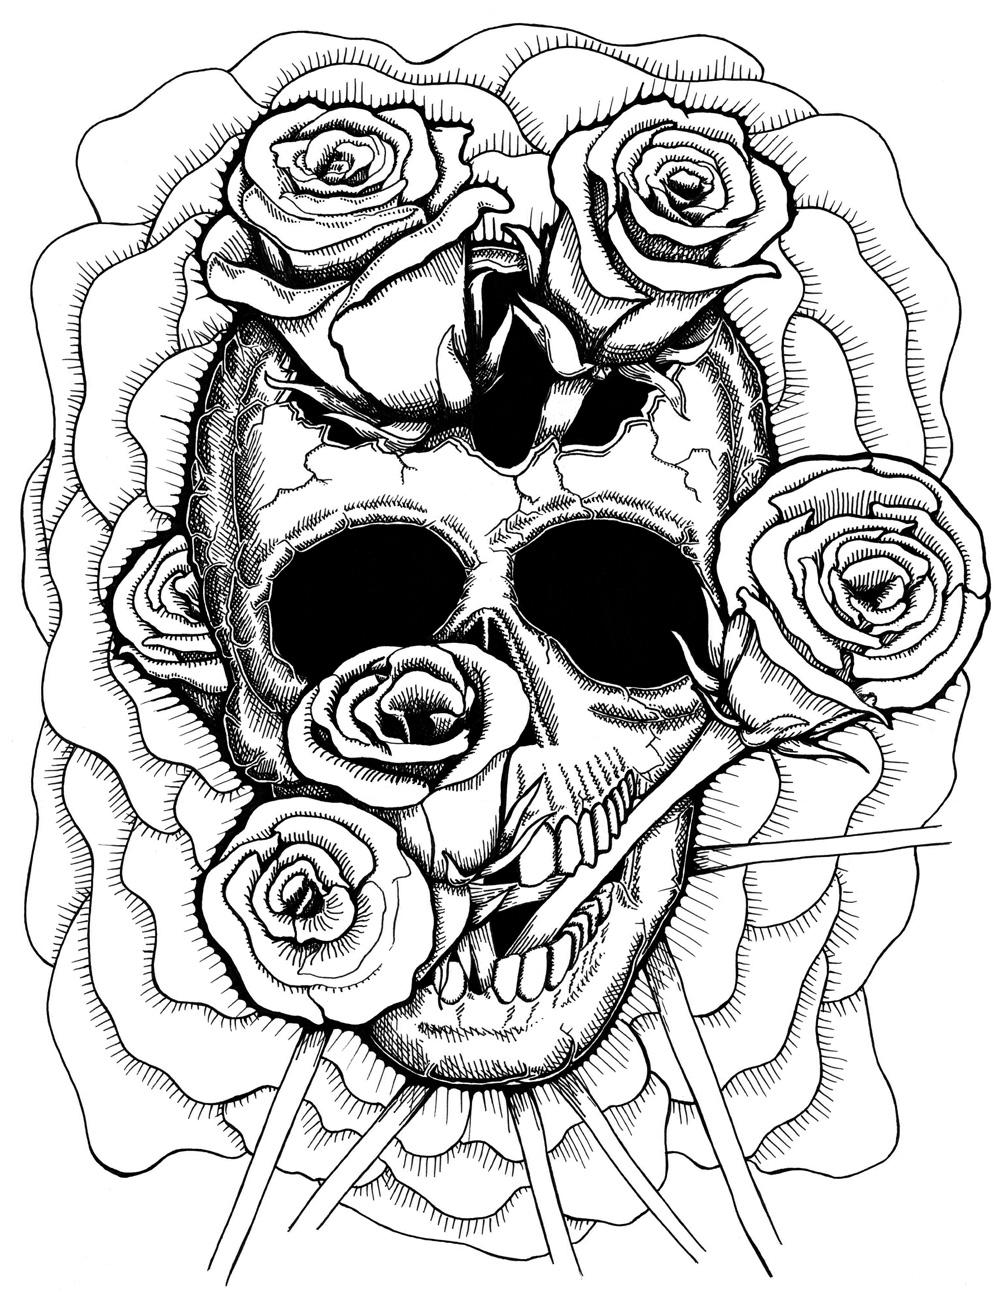 coloring pages skull yucca flats nm wenchkin39s coloring pages woman39s face pages skull coloring